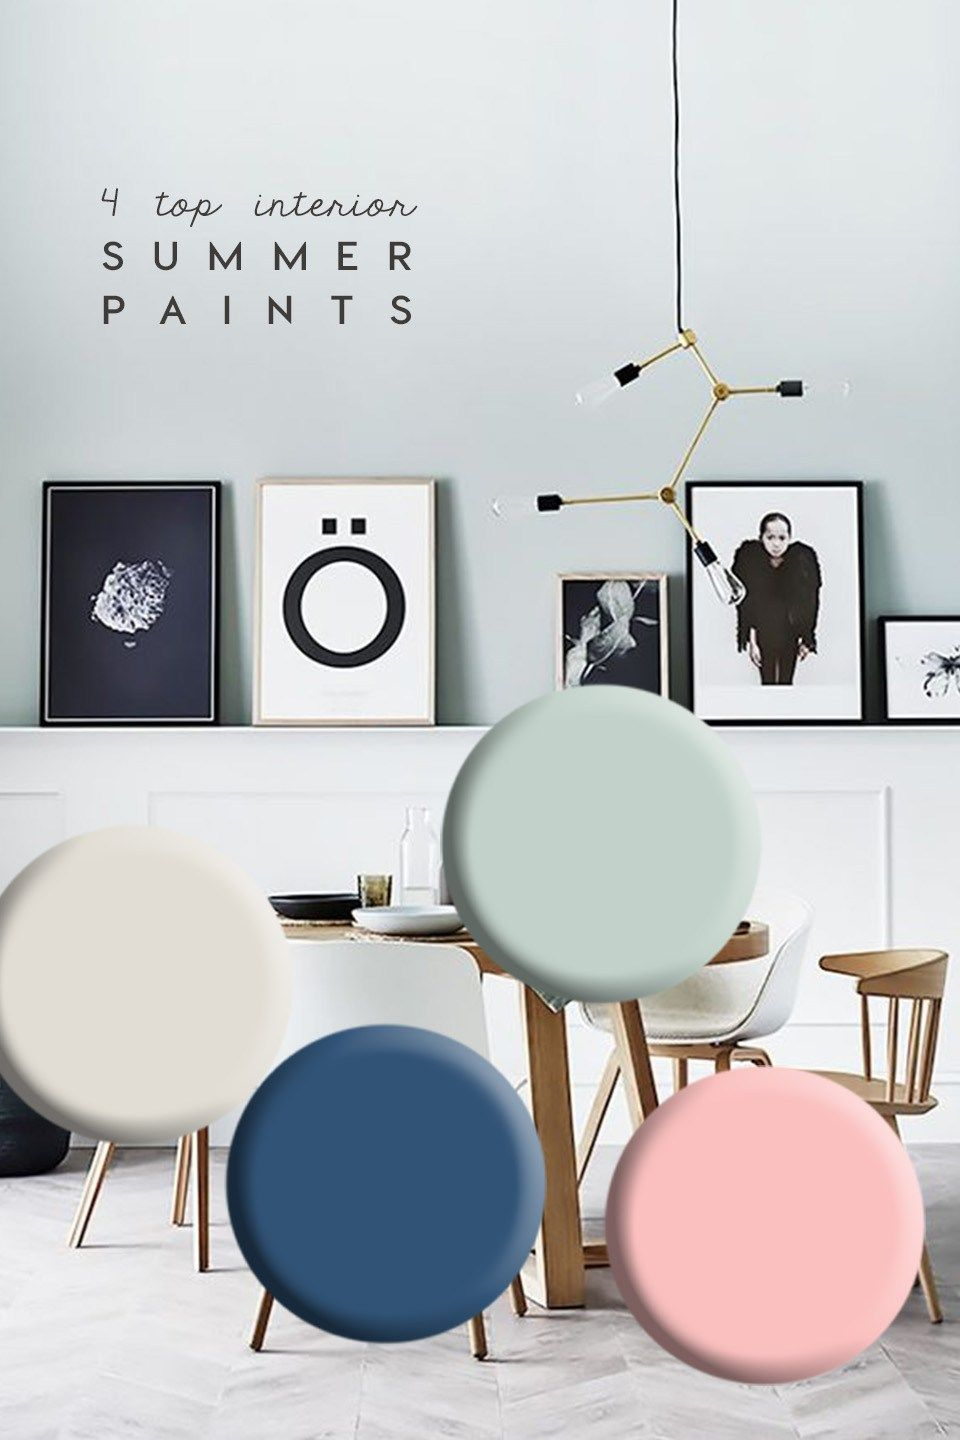 4 Top paint trends to refresh home this Summer   Dream studio, Salon ...